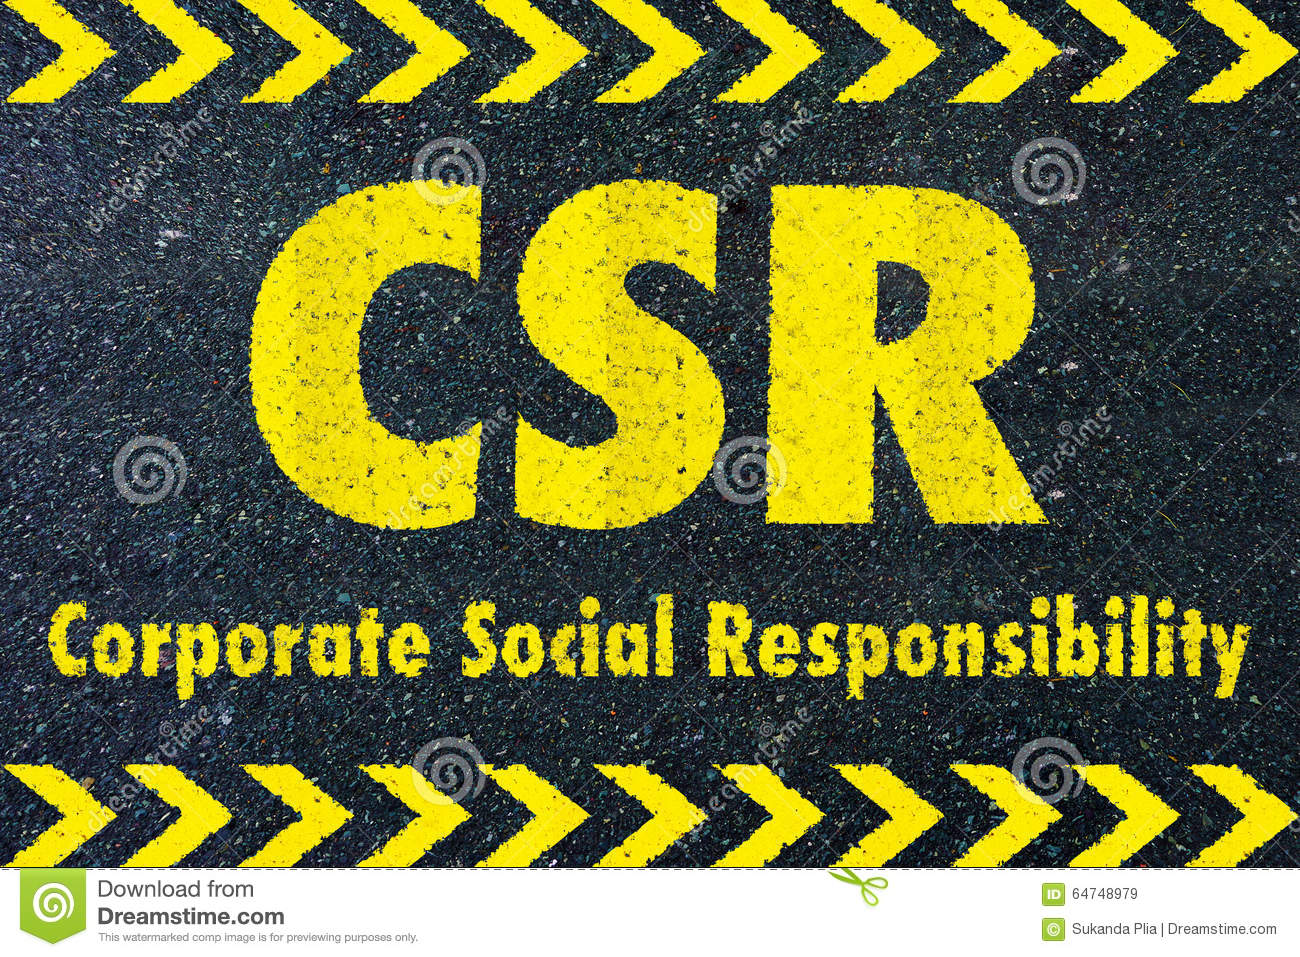 Talking about CSR